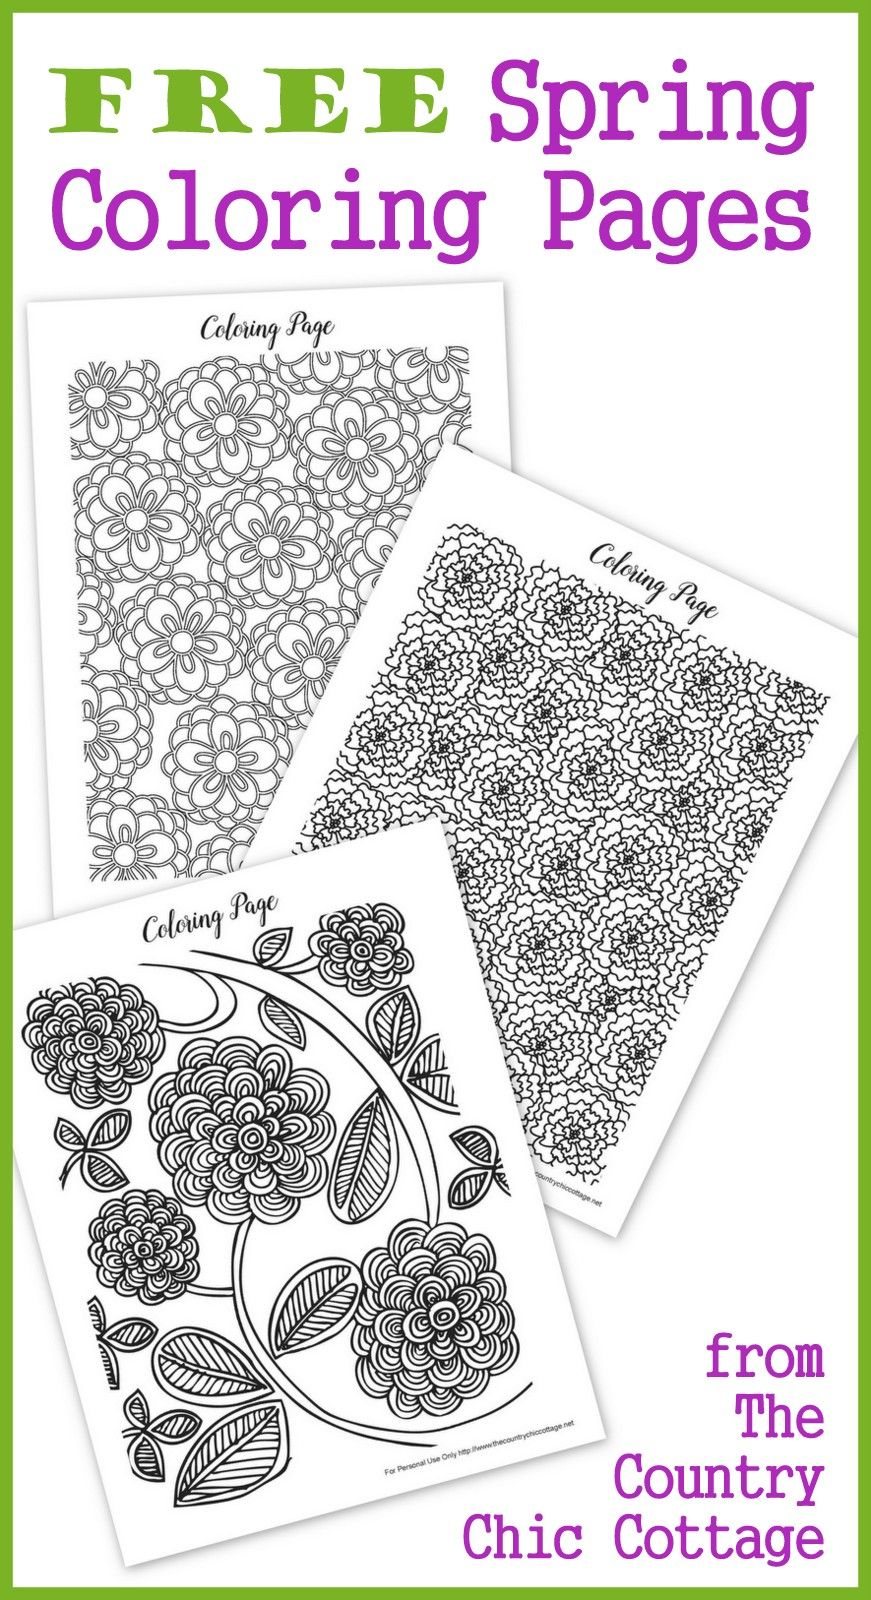 Free spring coloring pages for adults coloring pages pinterest